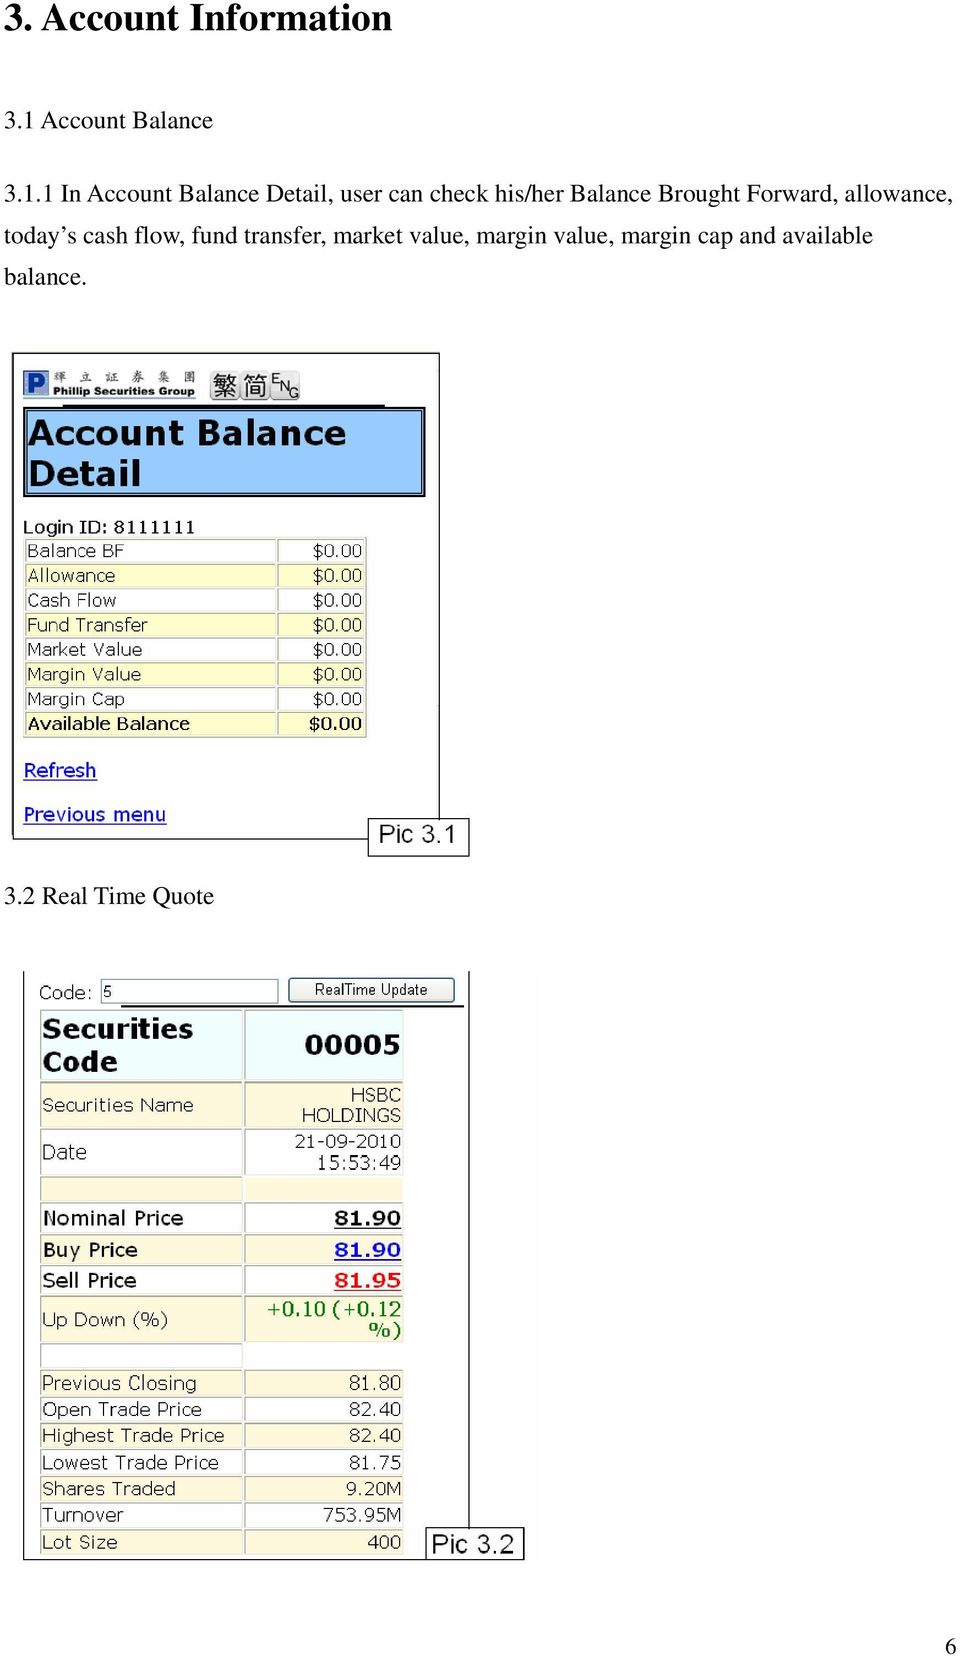 1 In Account Balance Detail, user can check his/her Balance